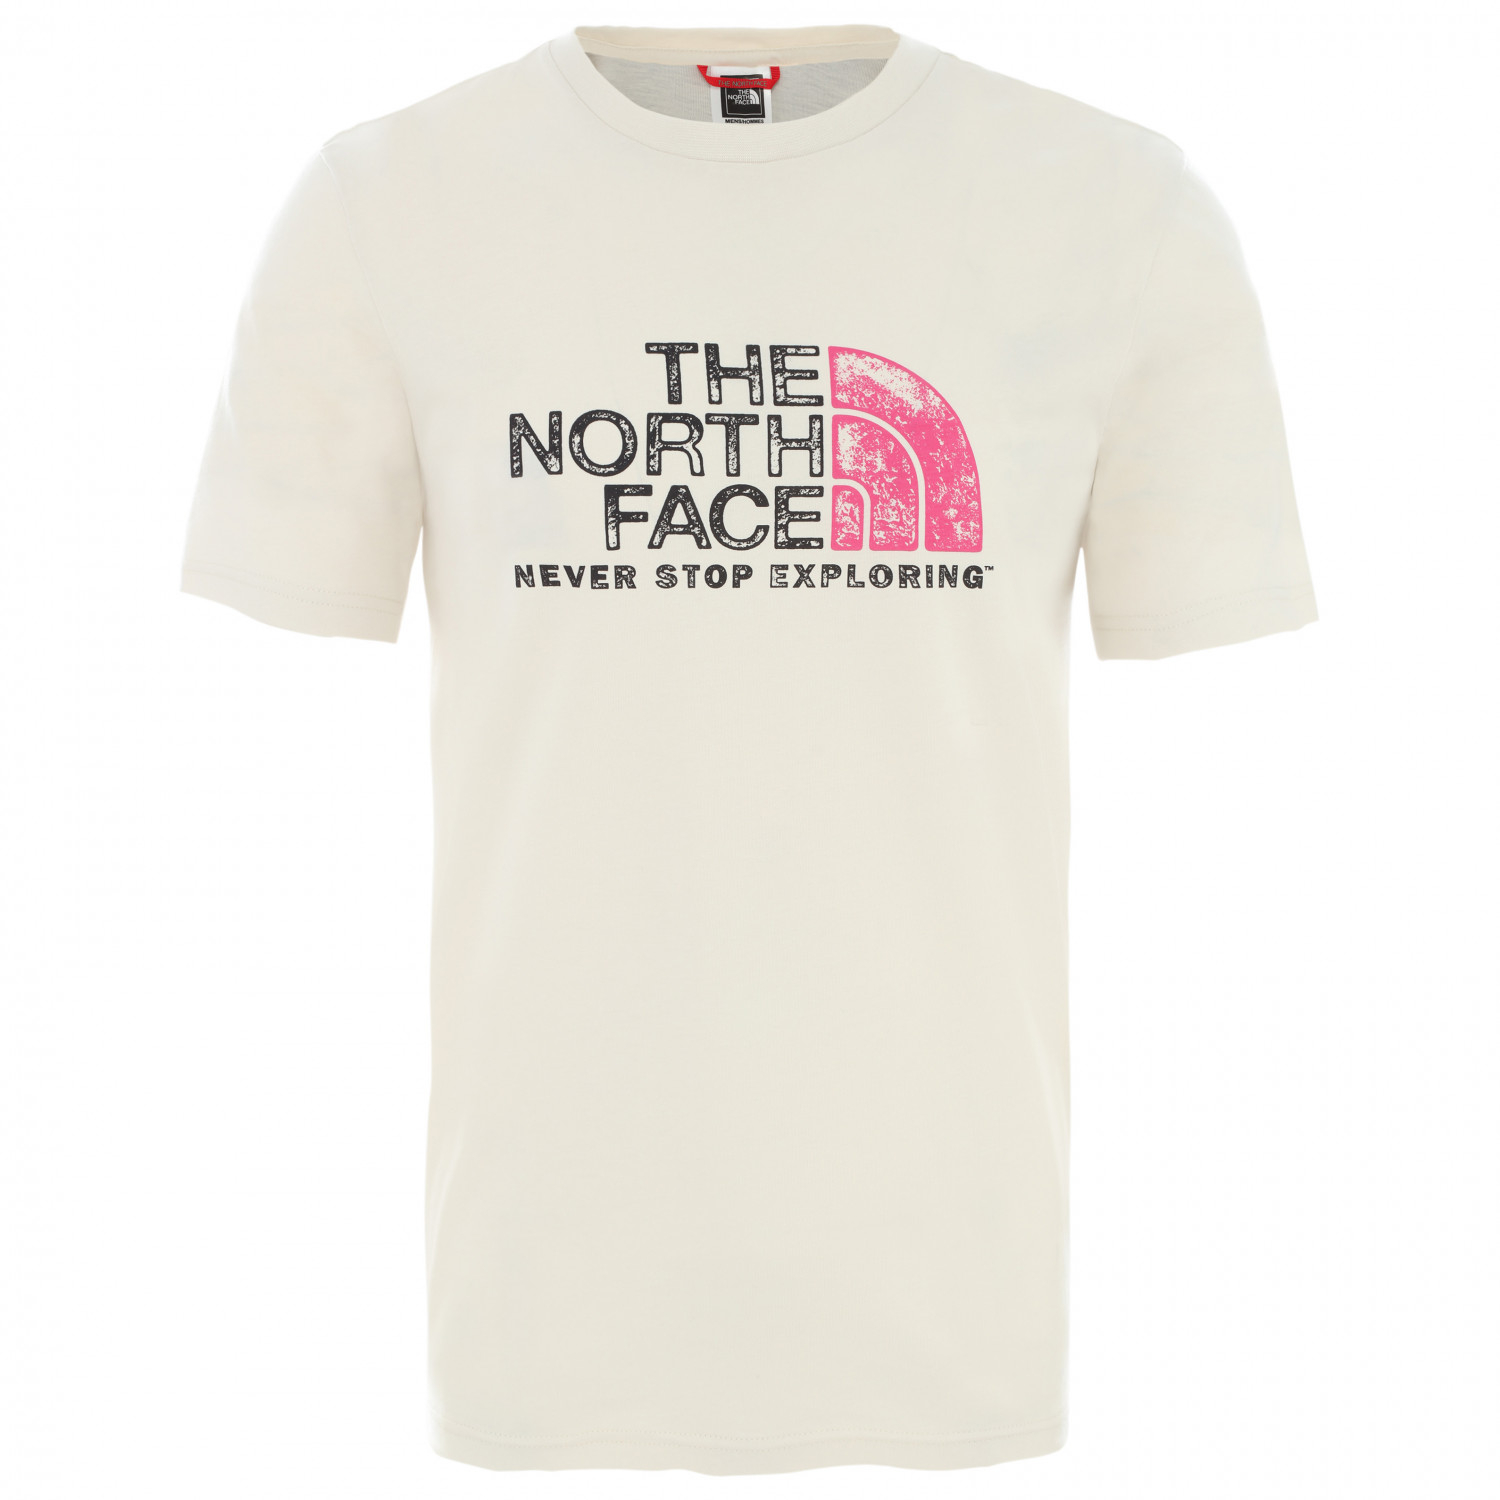 T-Shirt The North Face Rust 2 Tee ( More Colors )